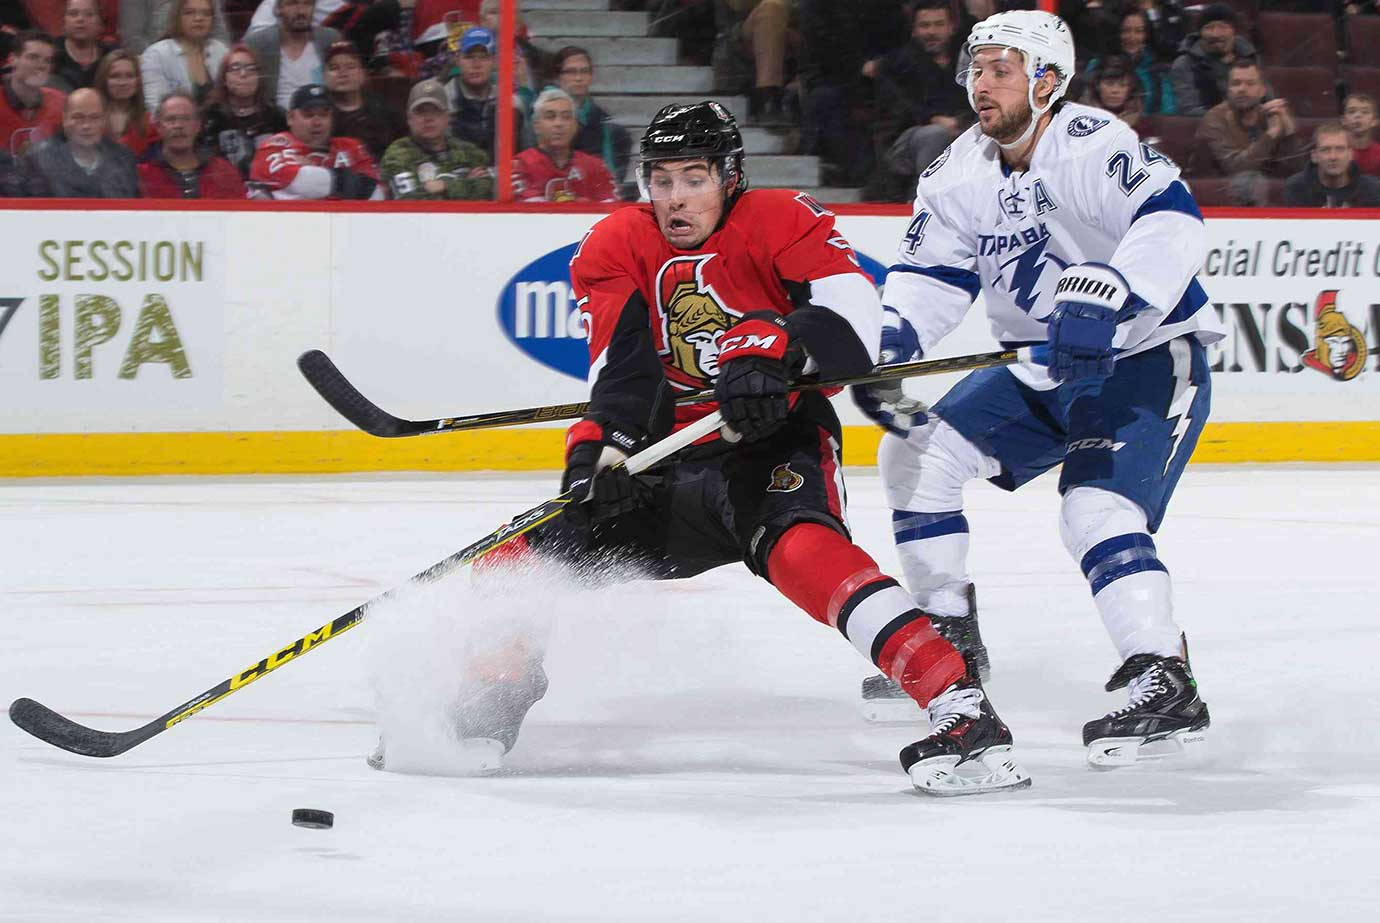 Ryan Callahan hooks Cody Ceci of Ottawa off a scoring chance, resulting in a penalty.